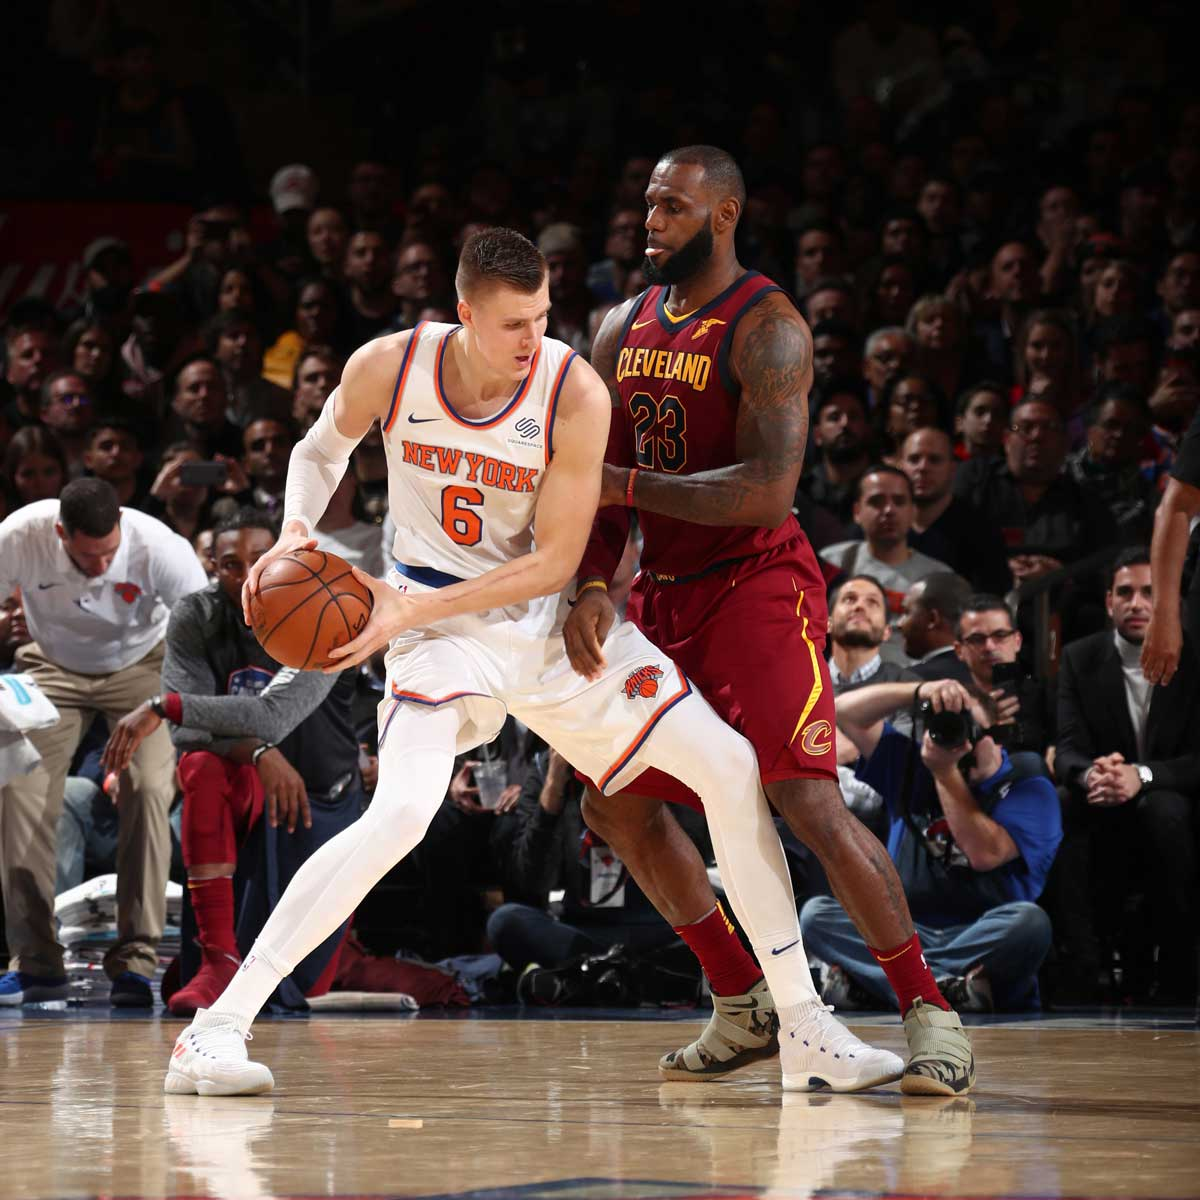 LeBron James #23 of the Cleveland Cavaliers defends Kristaps Porzingis #6 of the New York Knicks on November 13, 2017 at Madison Square Garden in New York City, New York.